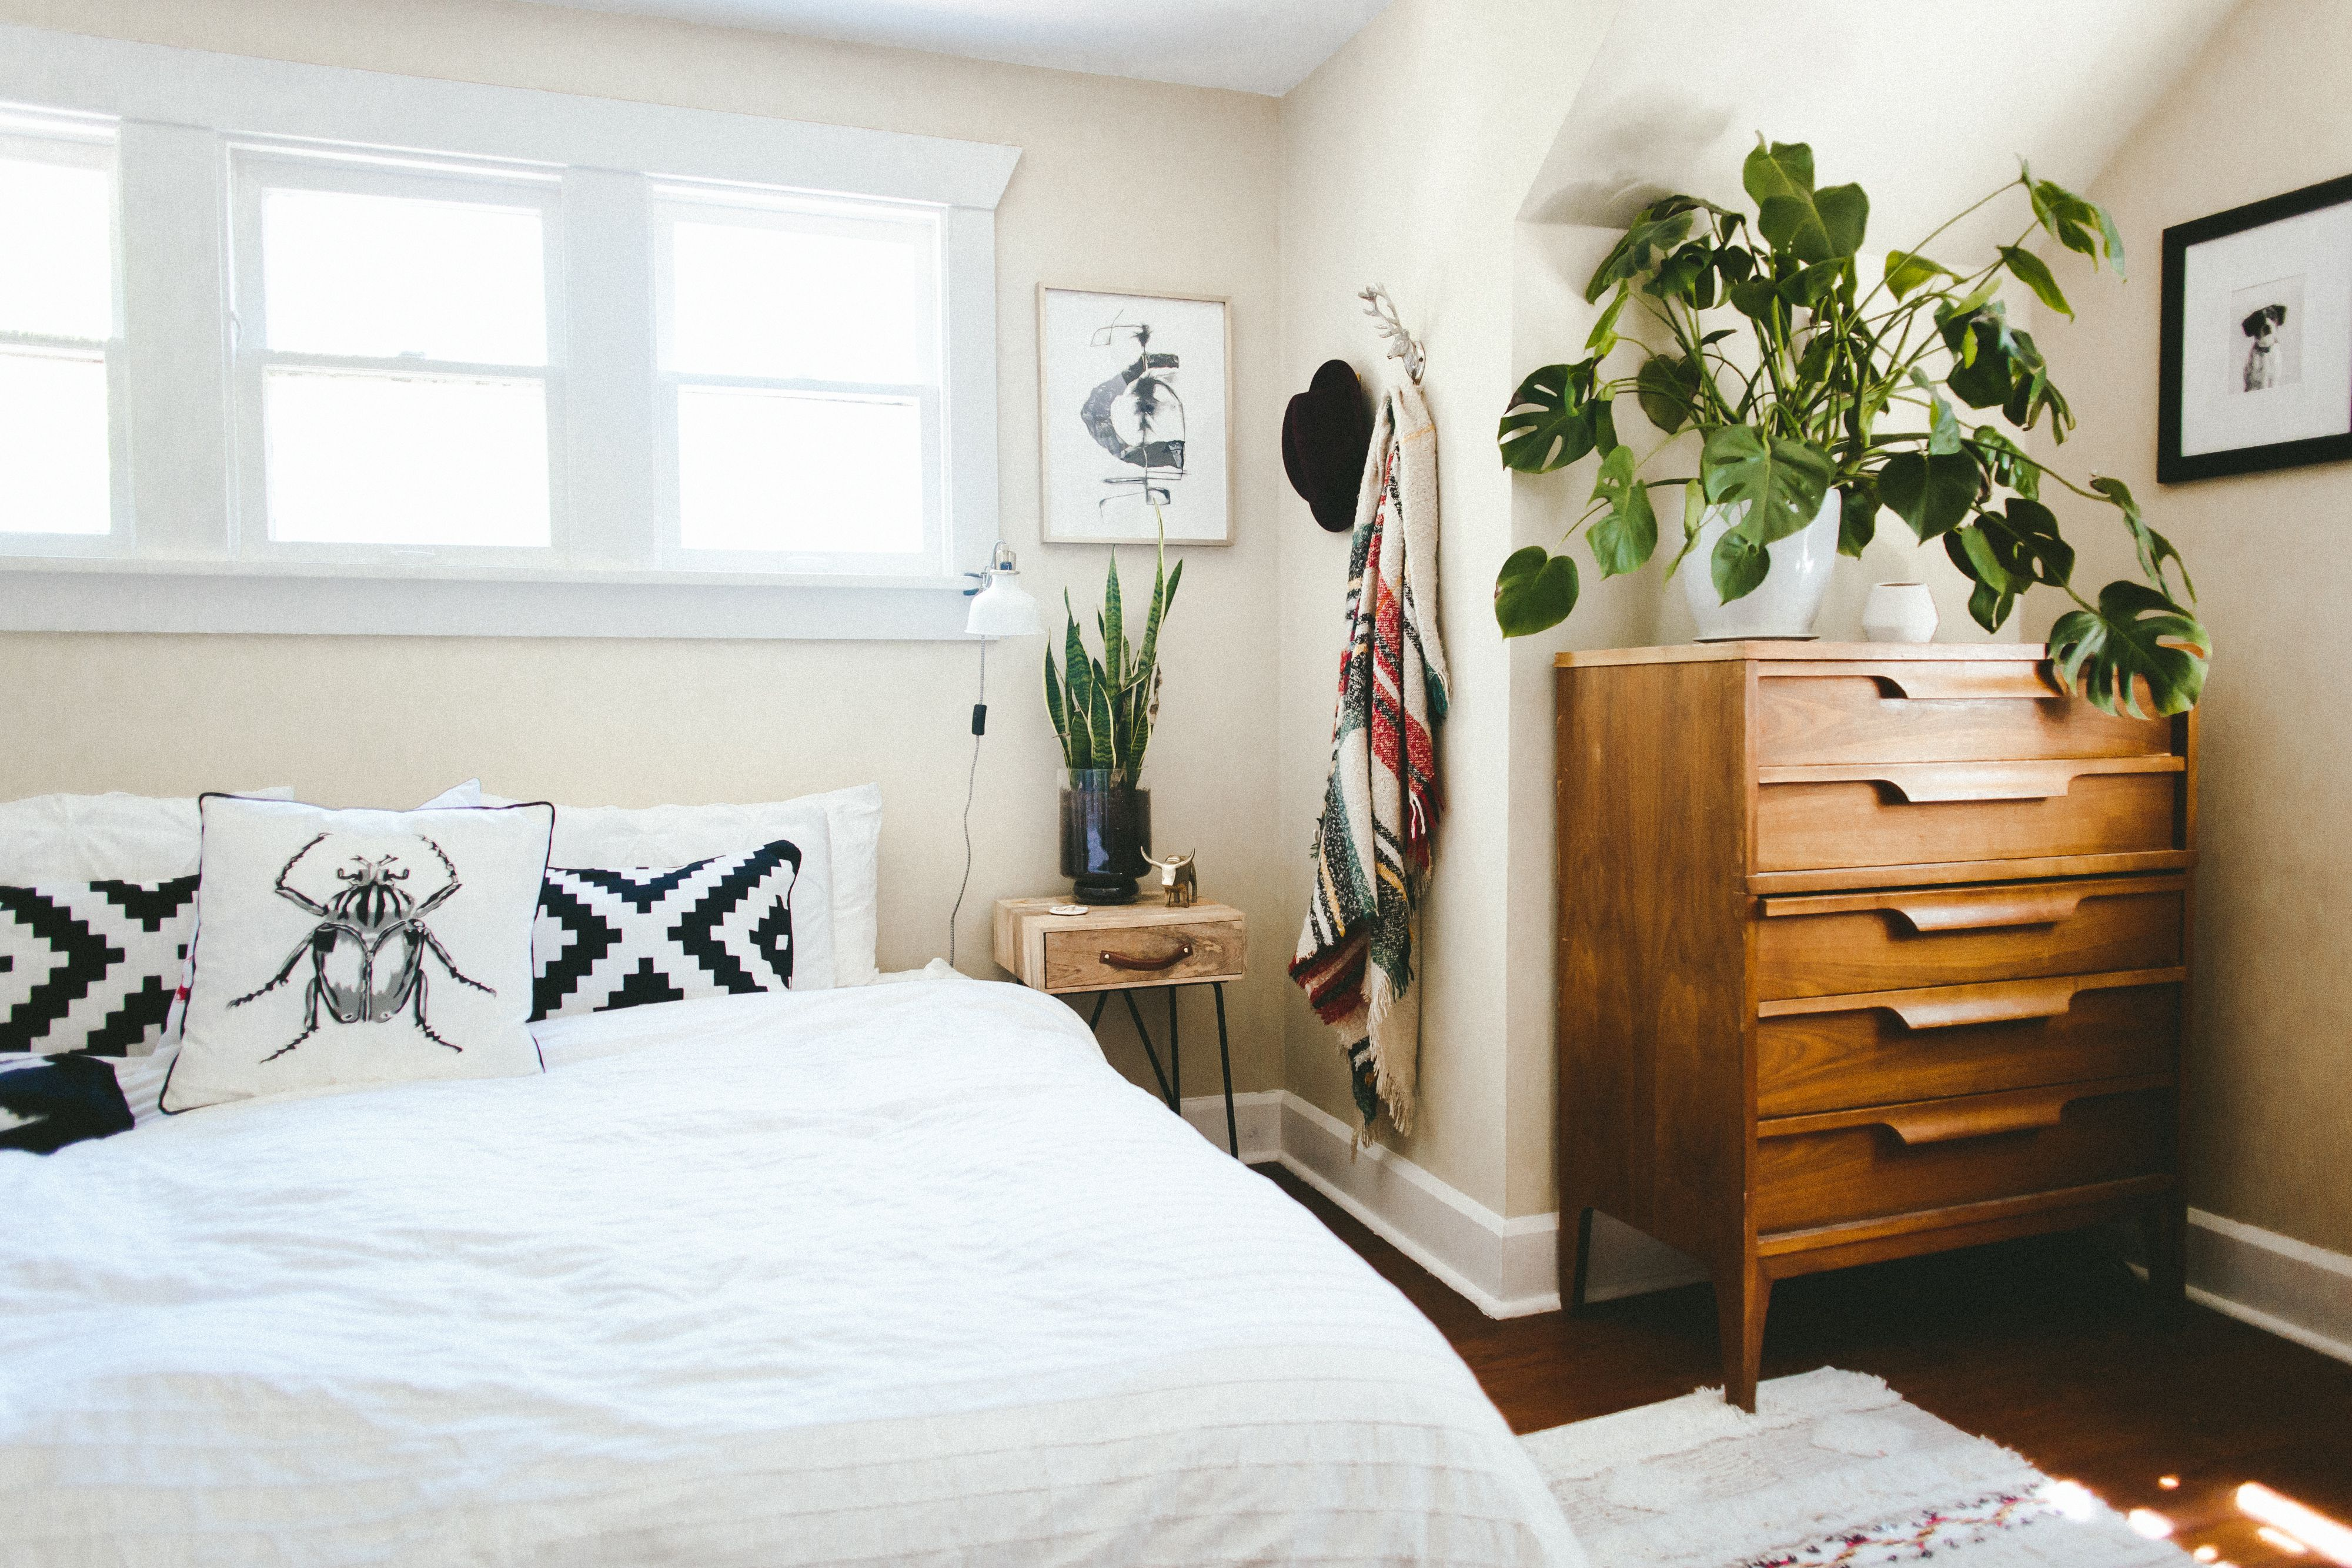 Feng Shui A Sneaky Tool for Feeling Good Home design